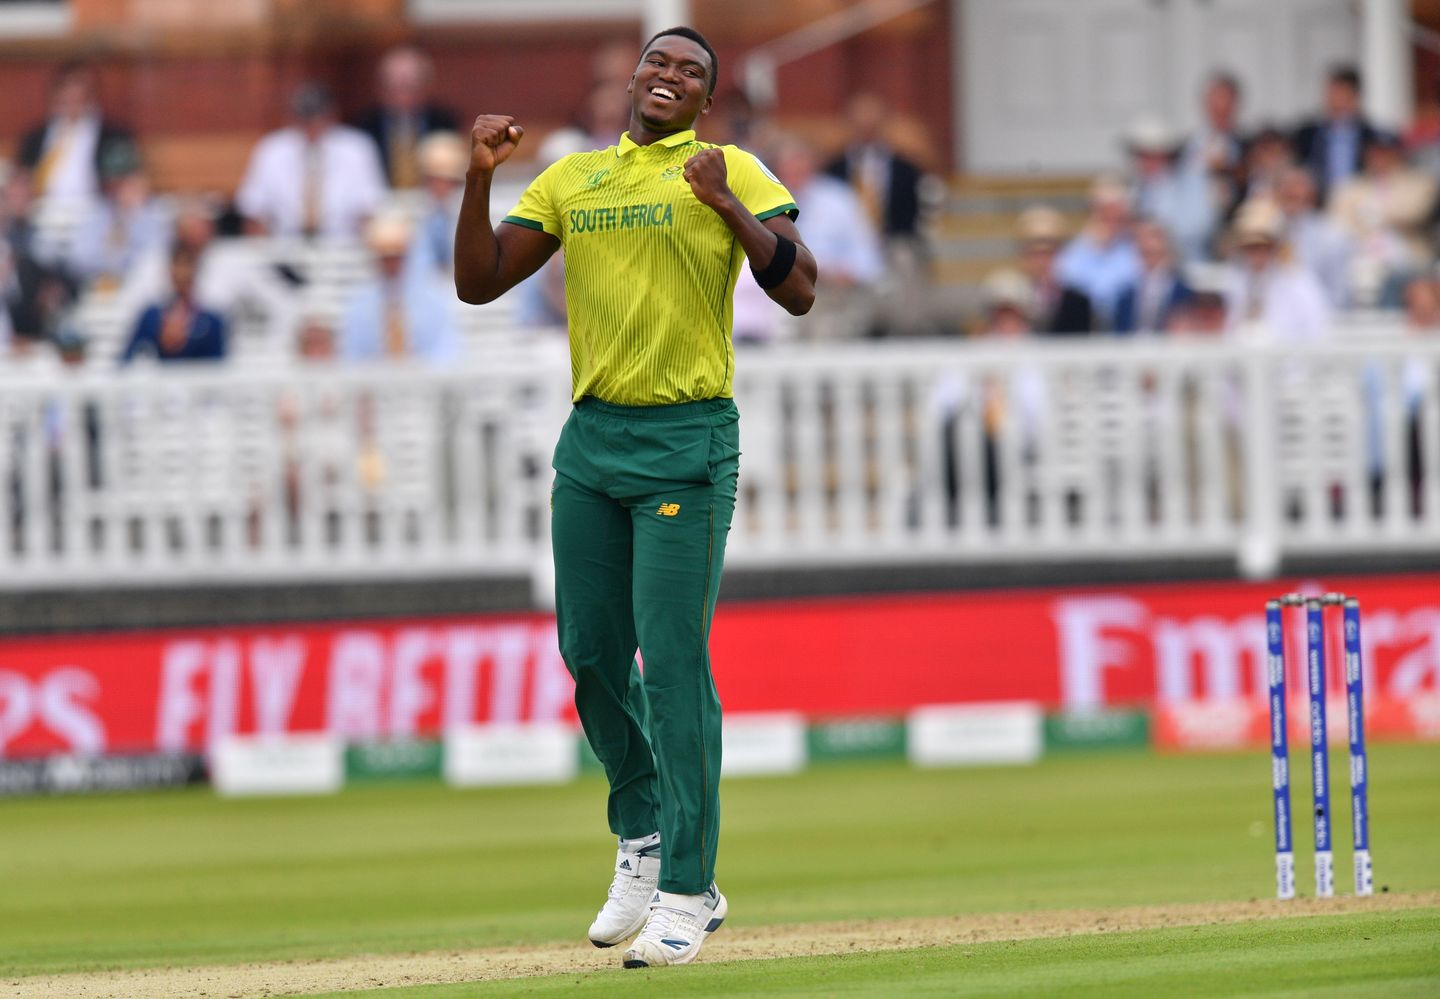 Will Ngidi be celebrating like this in The Hundred?